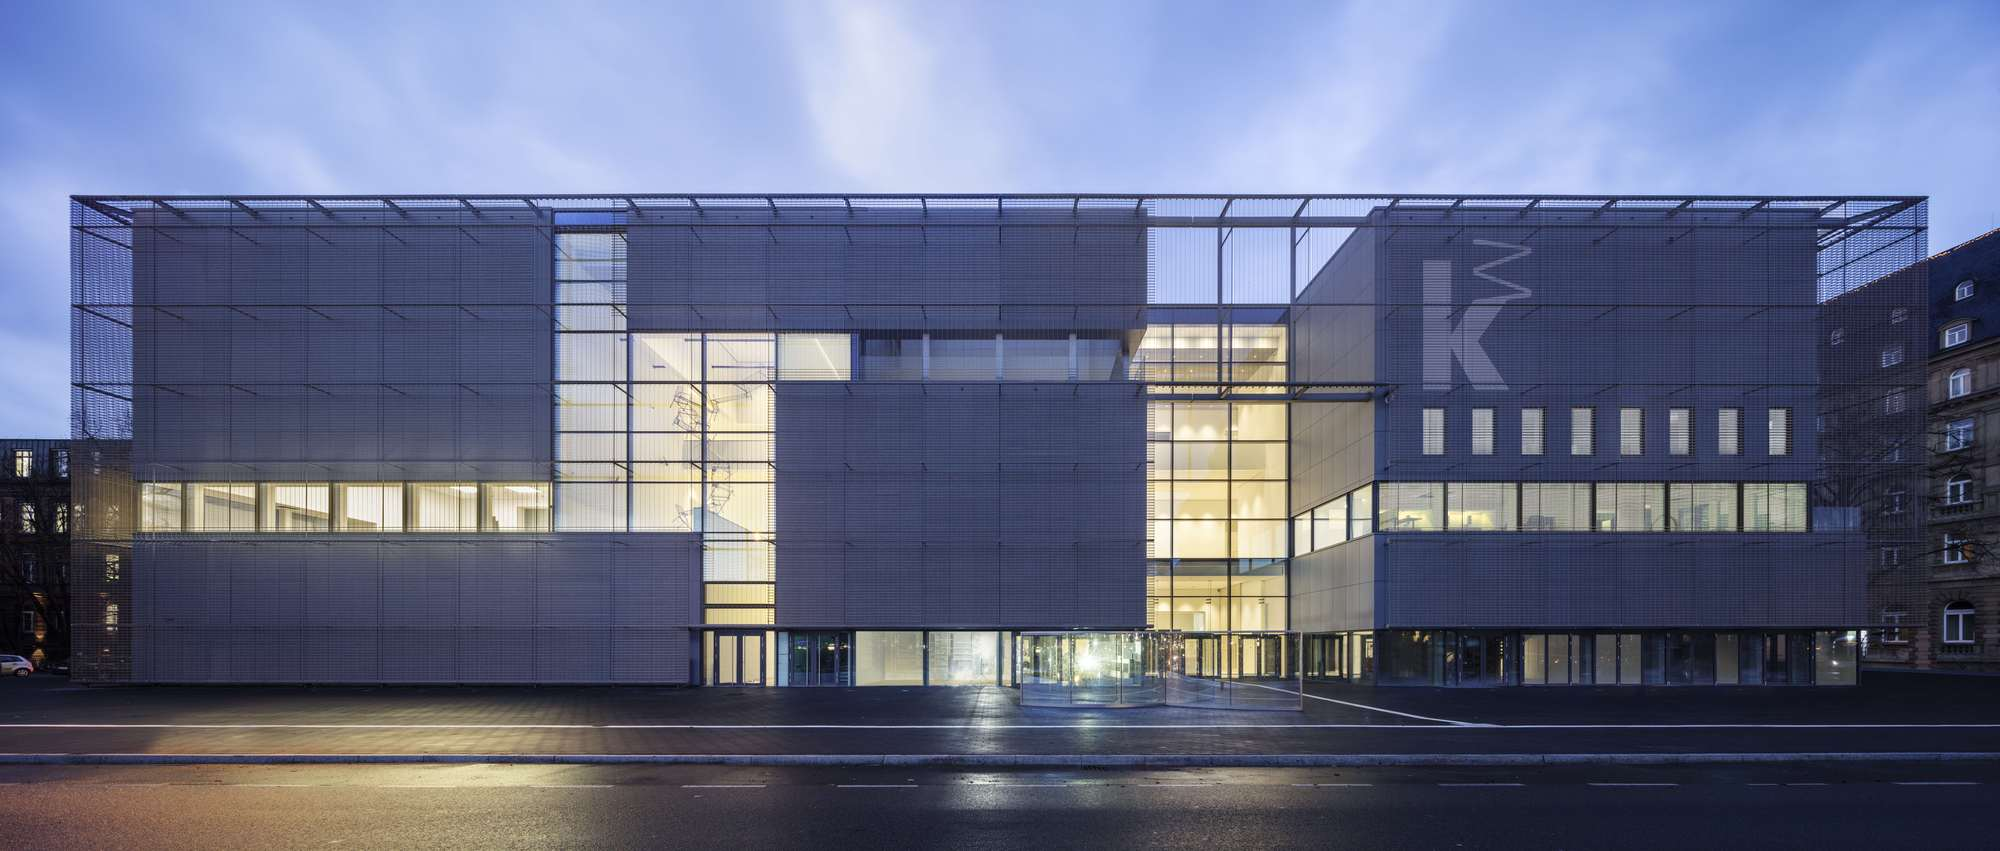 Perfect Architects. Gmp Architekten Nice Design